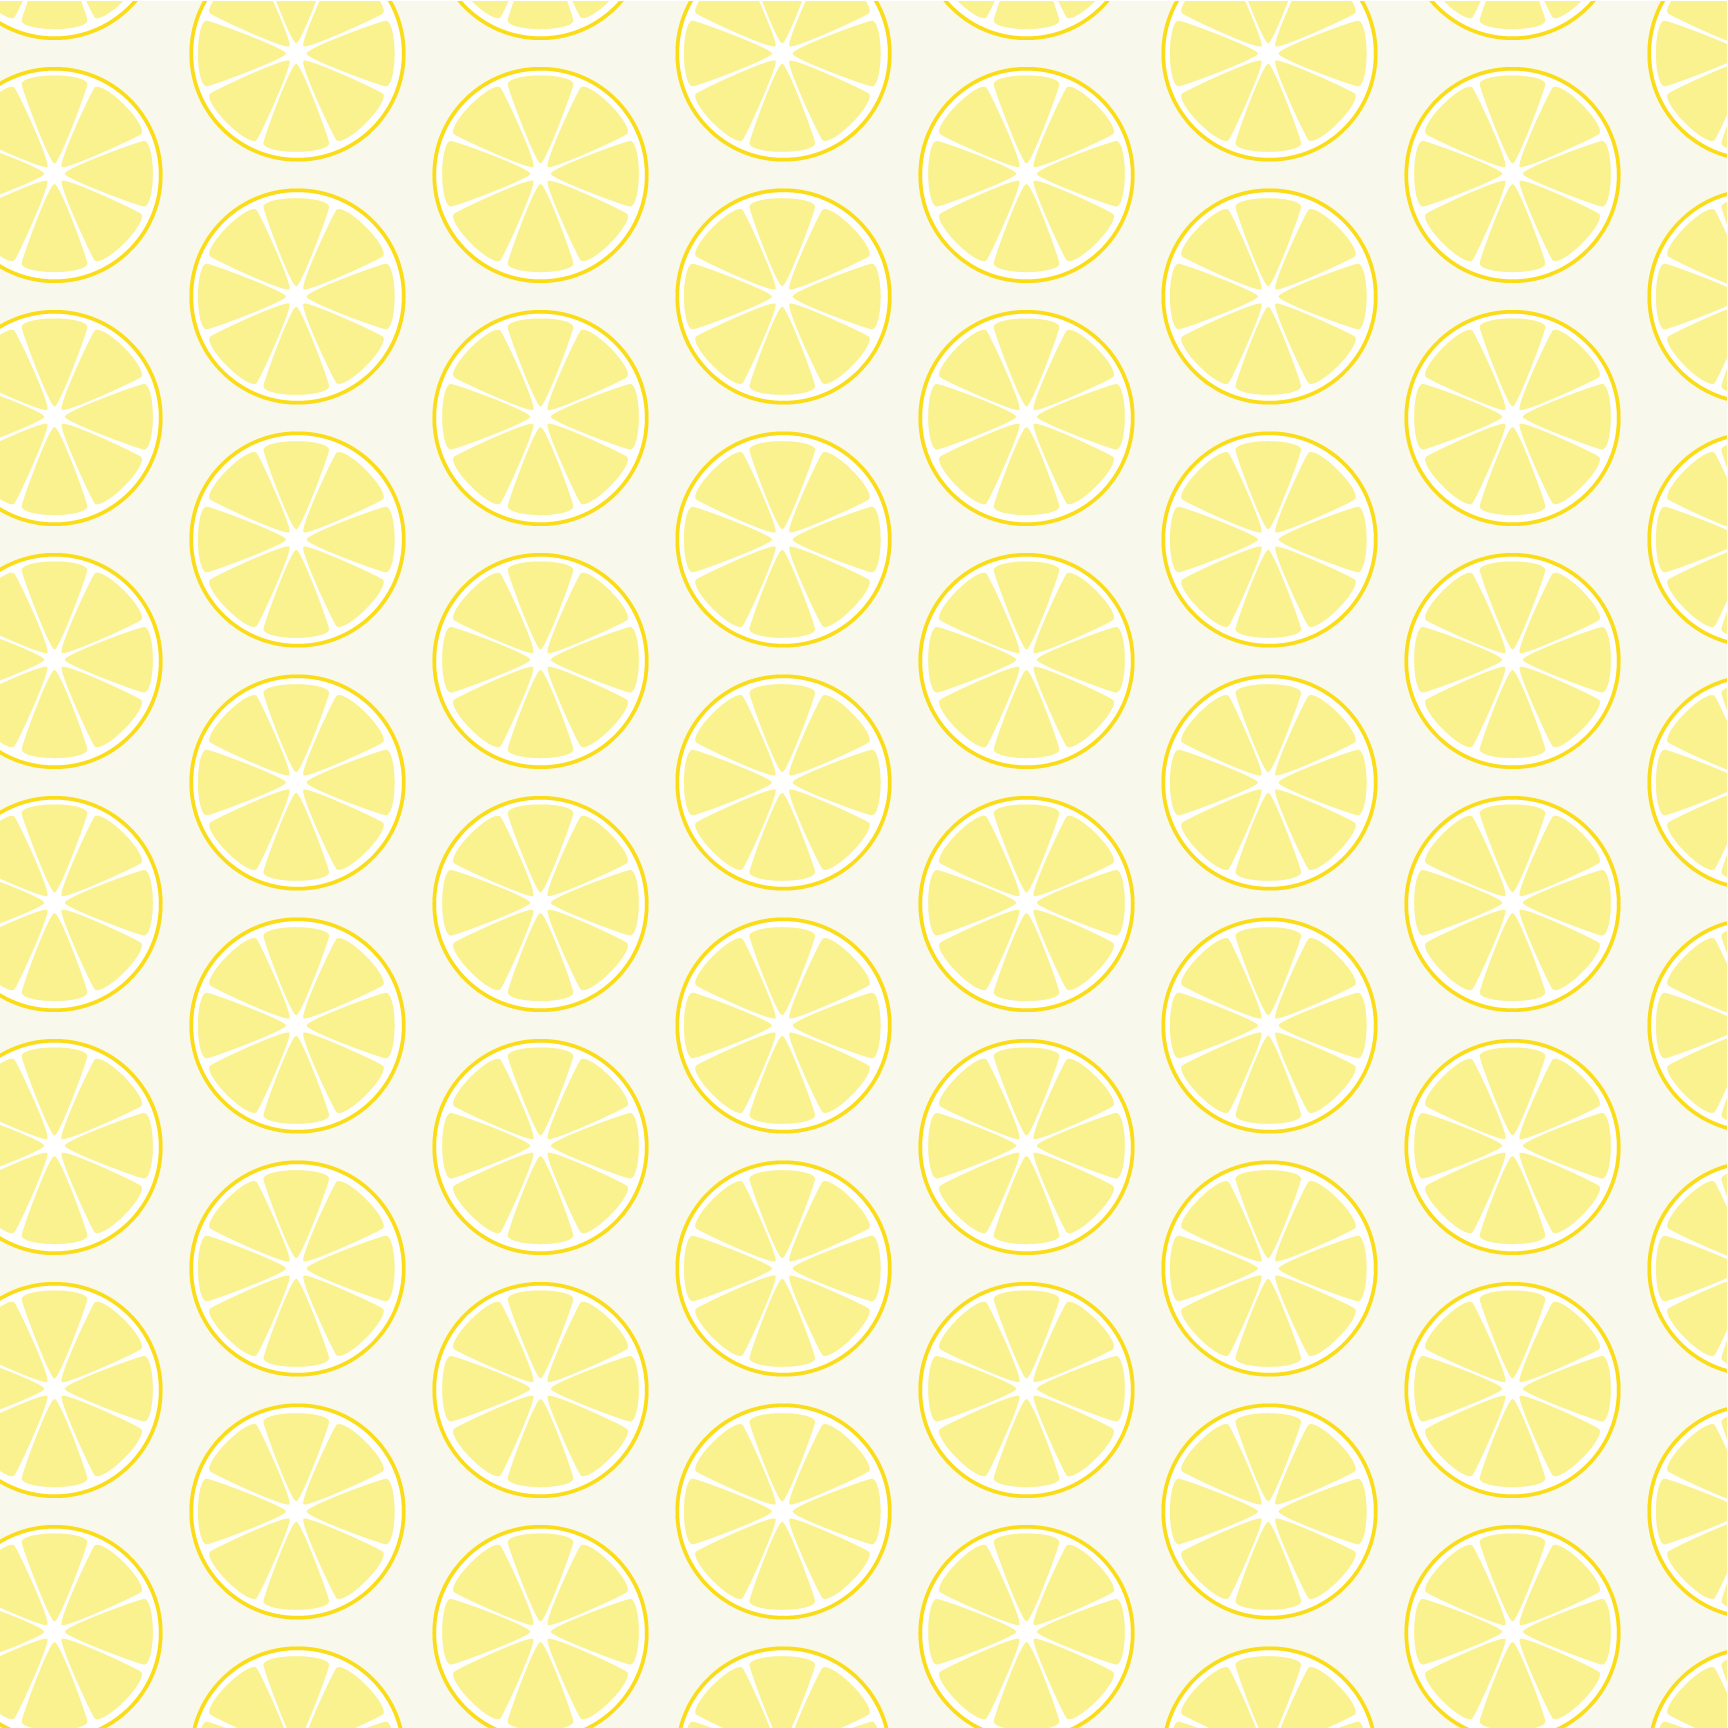 Lemon Step And Repeat Yellow Pattern Wwwkidsmopolitancom